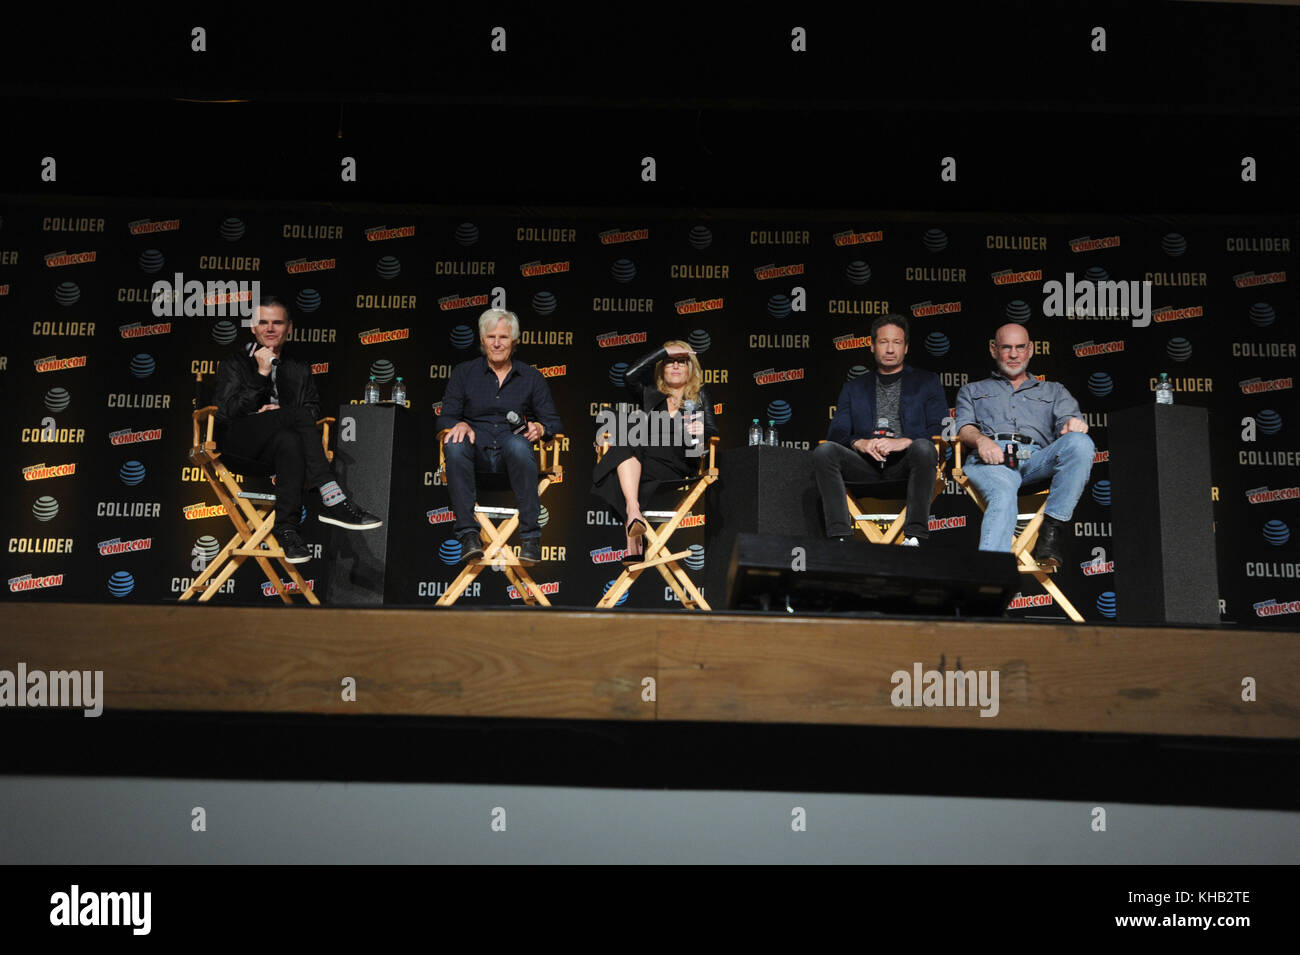 NEW YORK, NY - OCTOBER 08: Chris Carter, Gillian Anderson, David Duchovny, and Mitch Pileggi  speaks onstage at - Stock Image